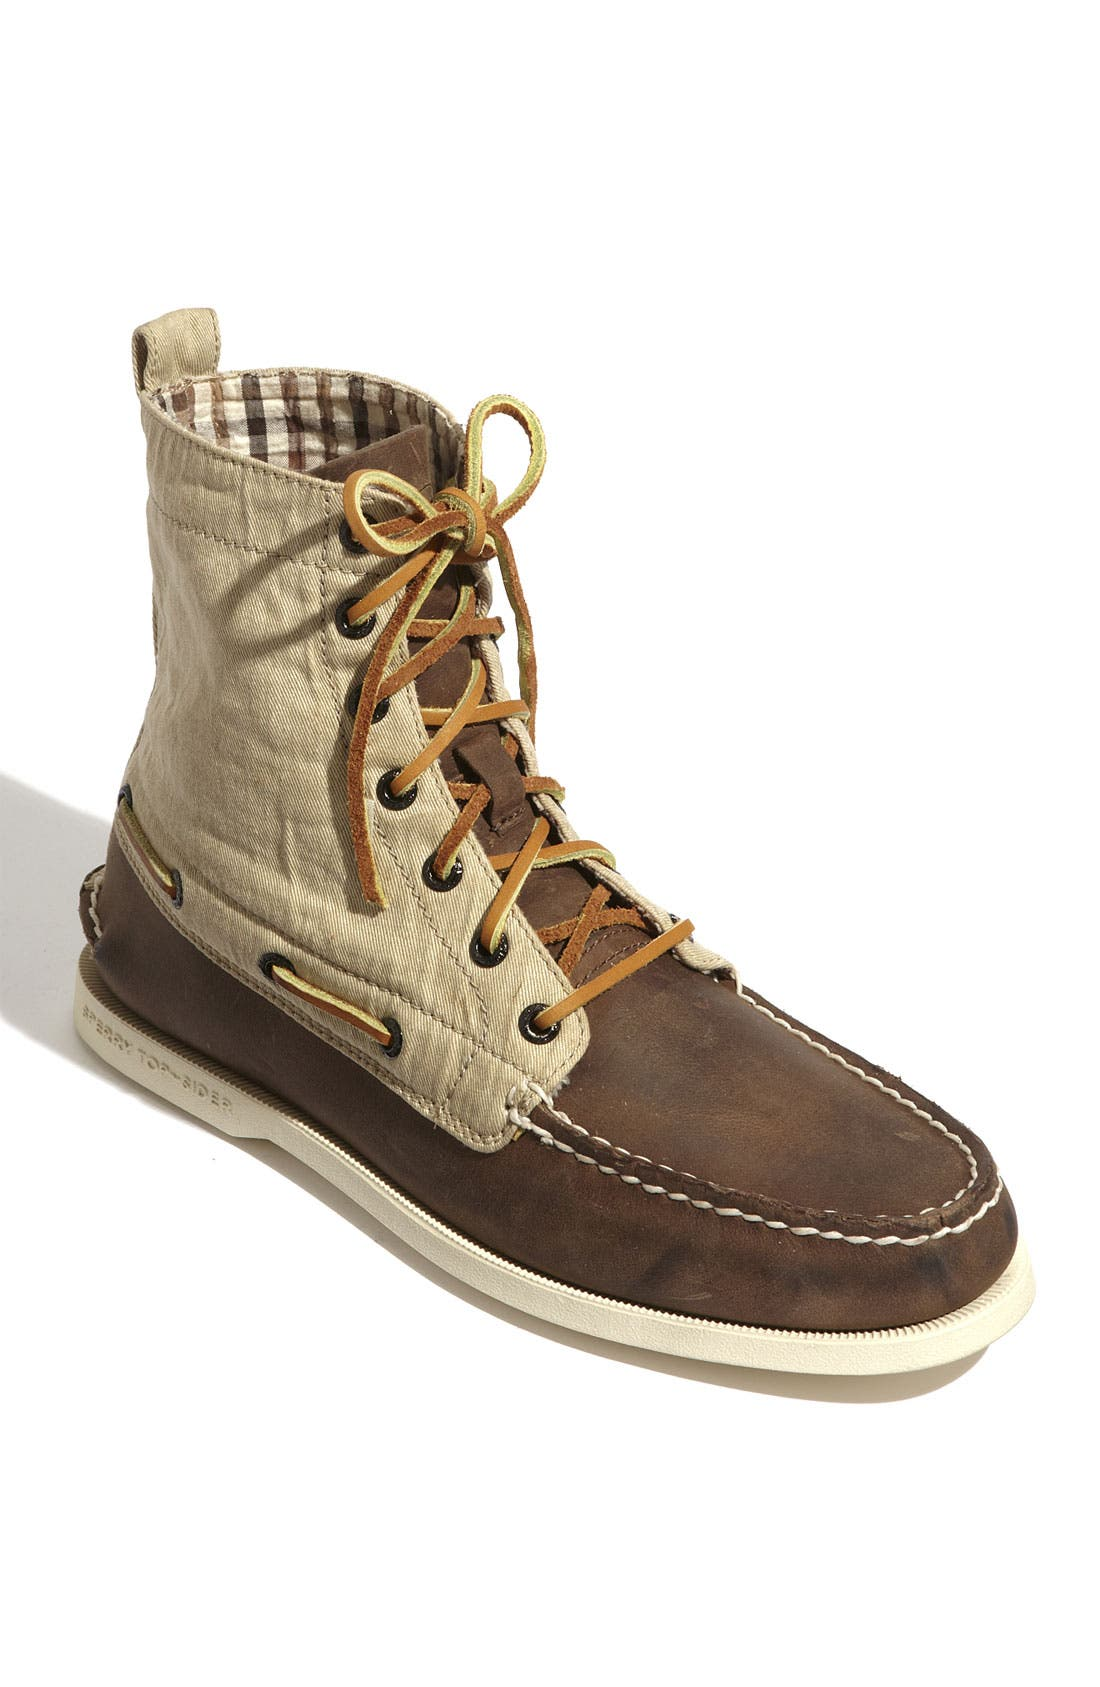 Alternate Image 1 Selected - Sperry Top-Sider® 'Authentic Original 7-Eye' Lace-Up